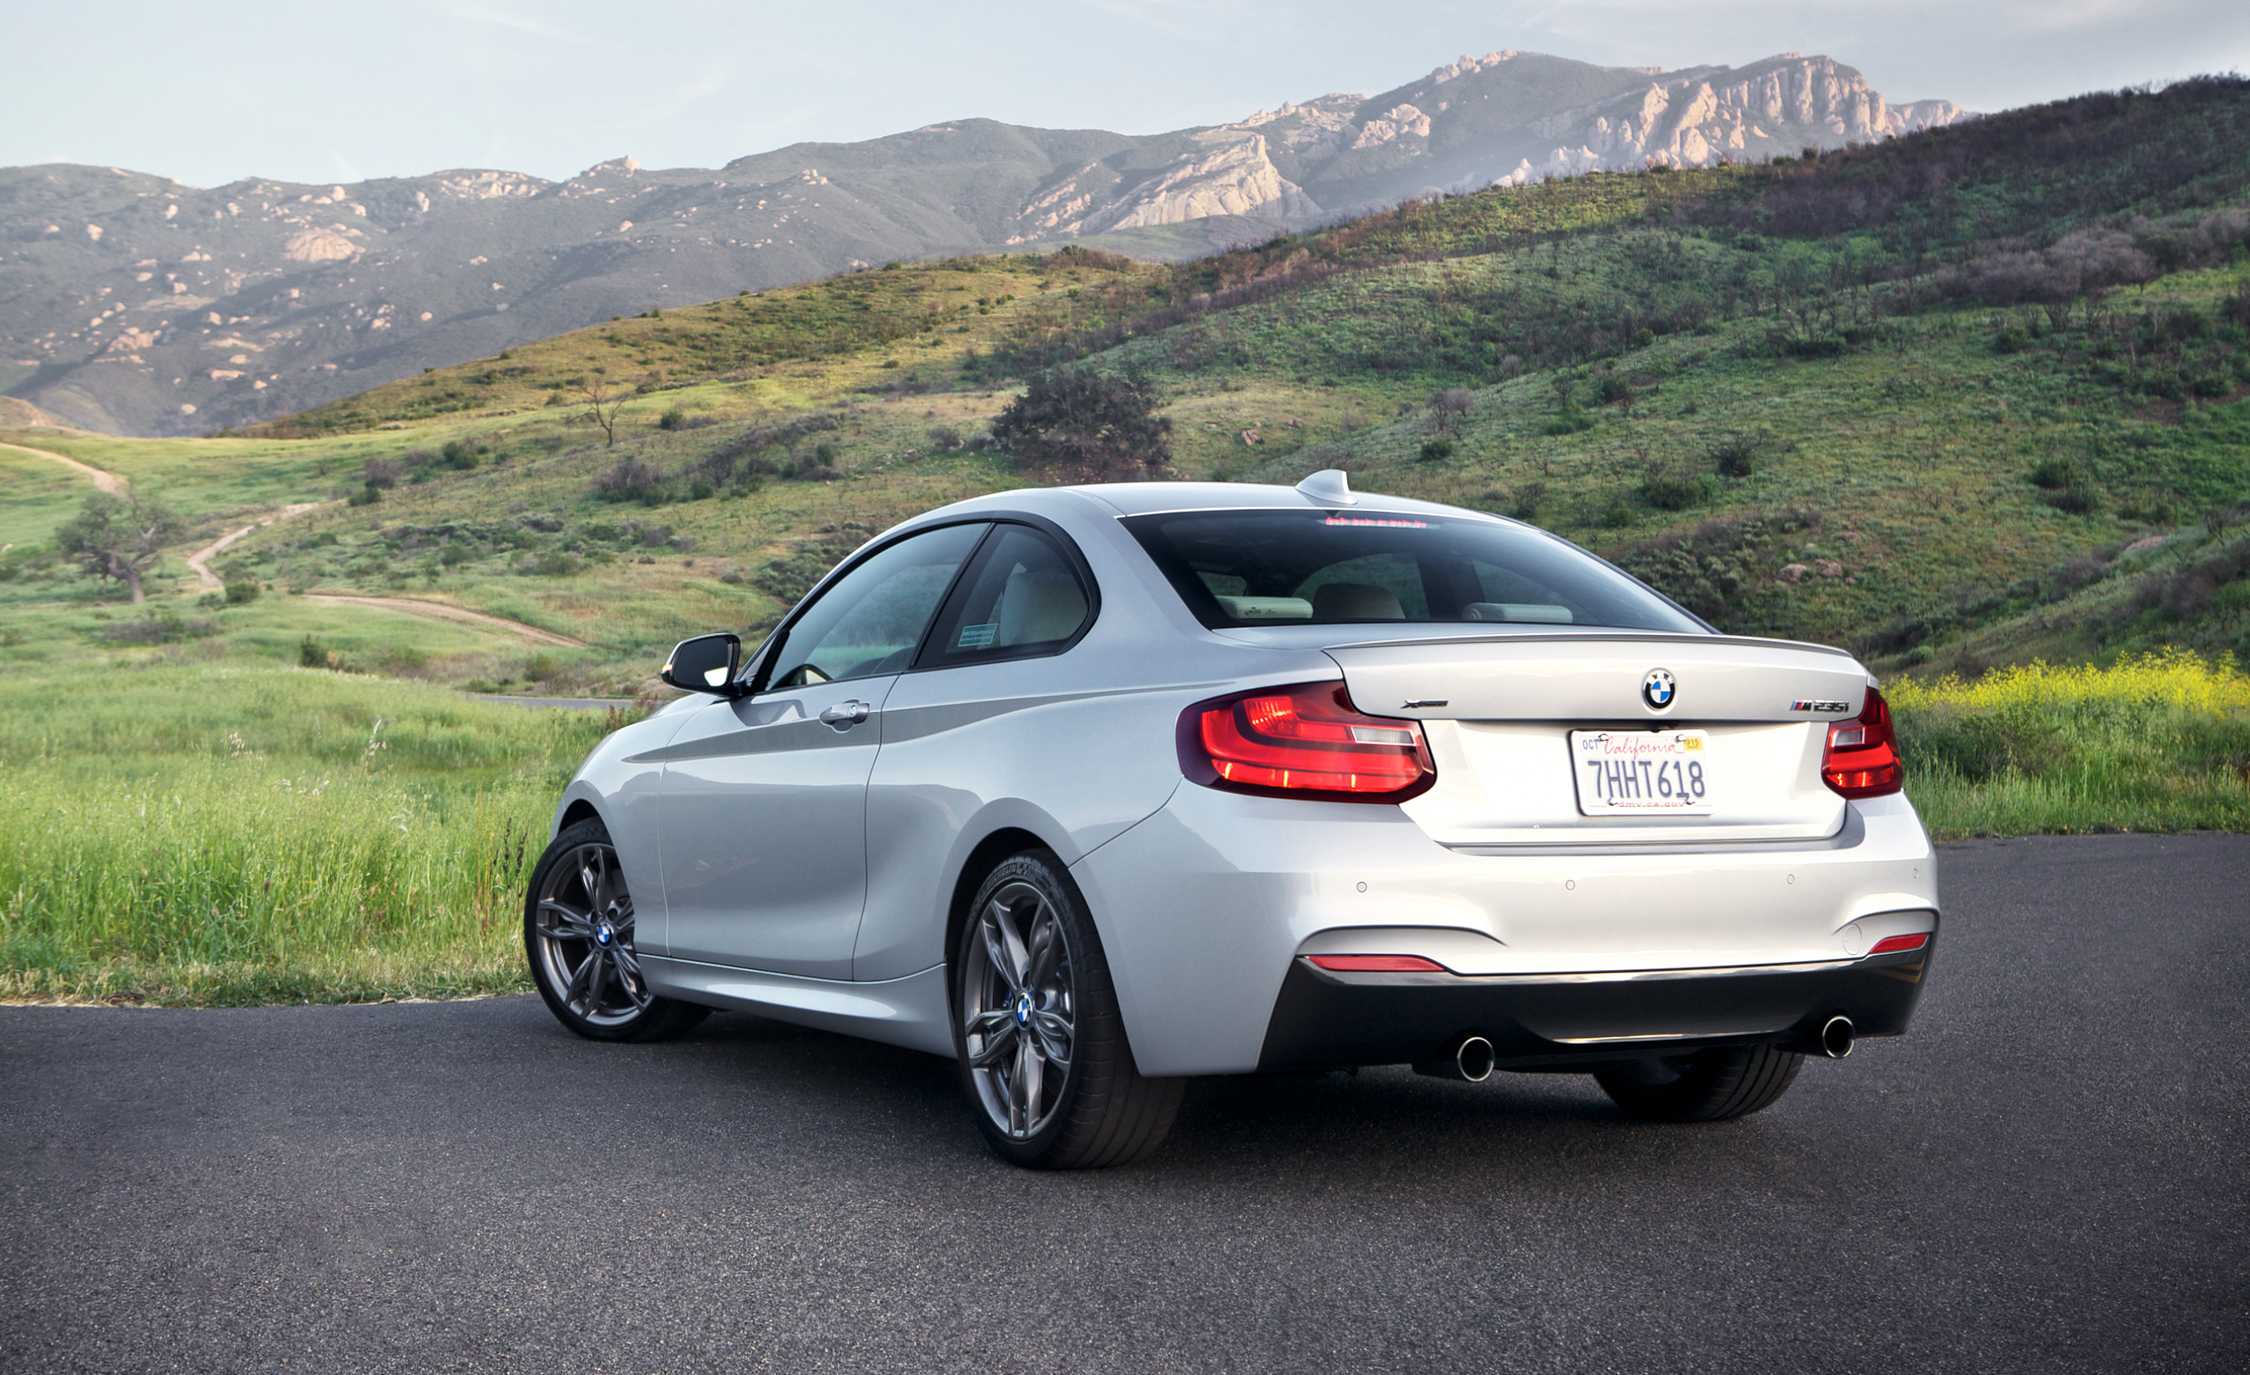 2015 BMW M235i xDrive Exterior Rear and Side